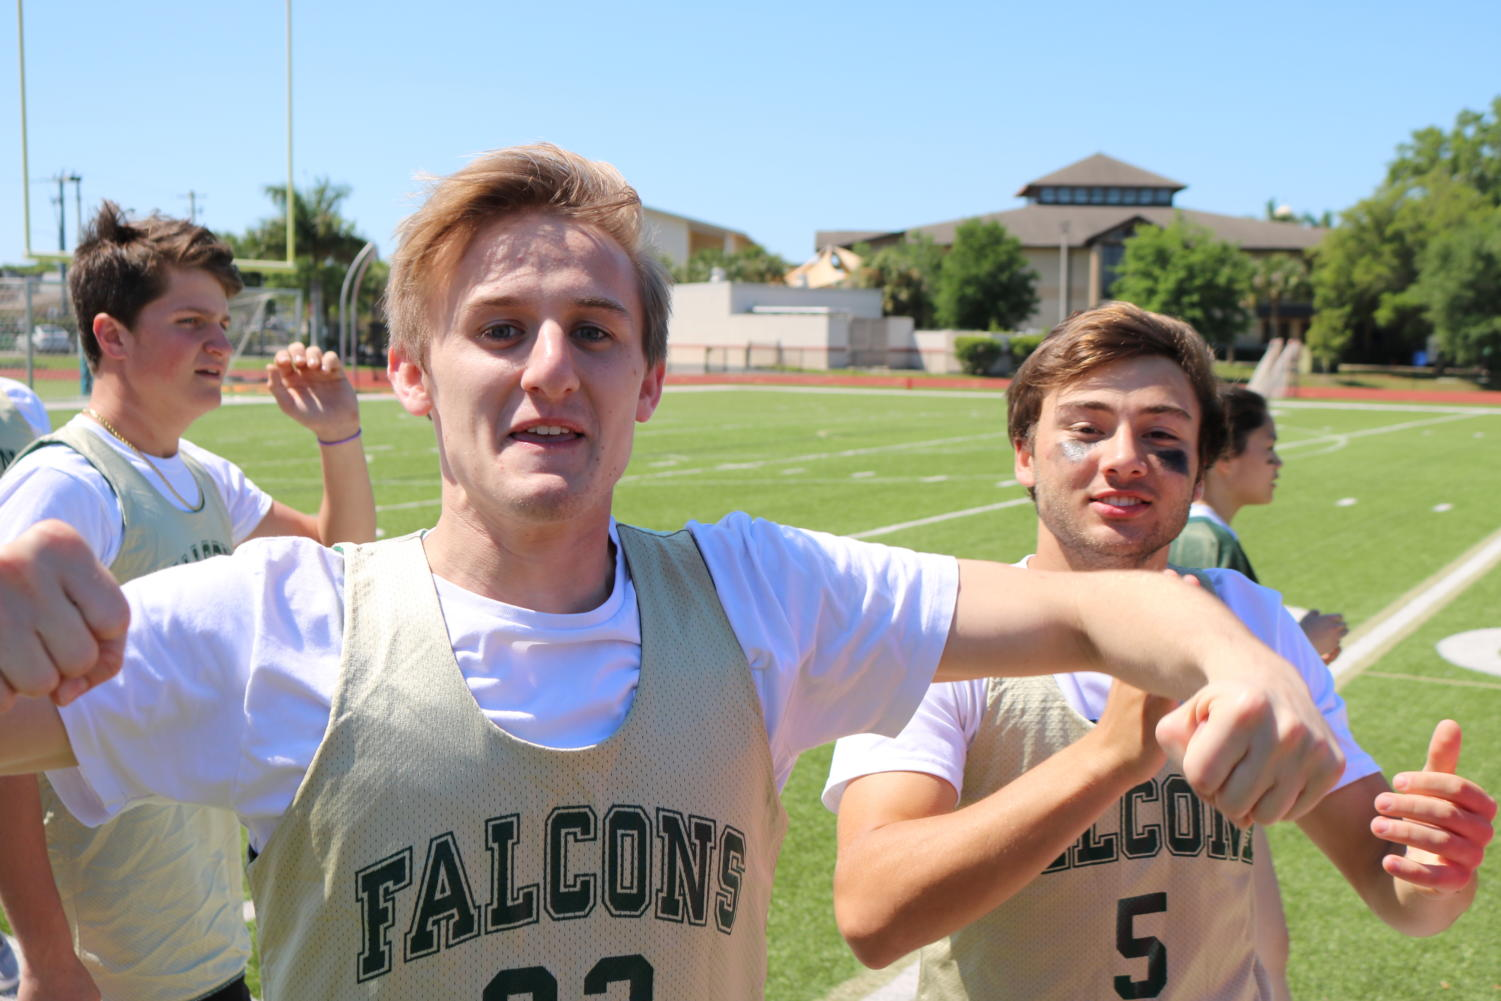 Seniors Jim Class, Ben Tobio, and Dalton Francis getting hyped